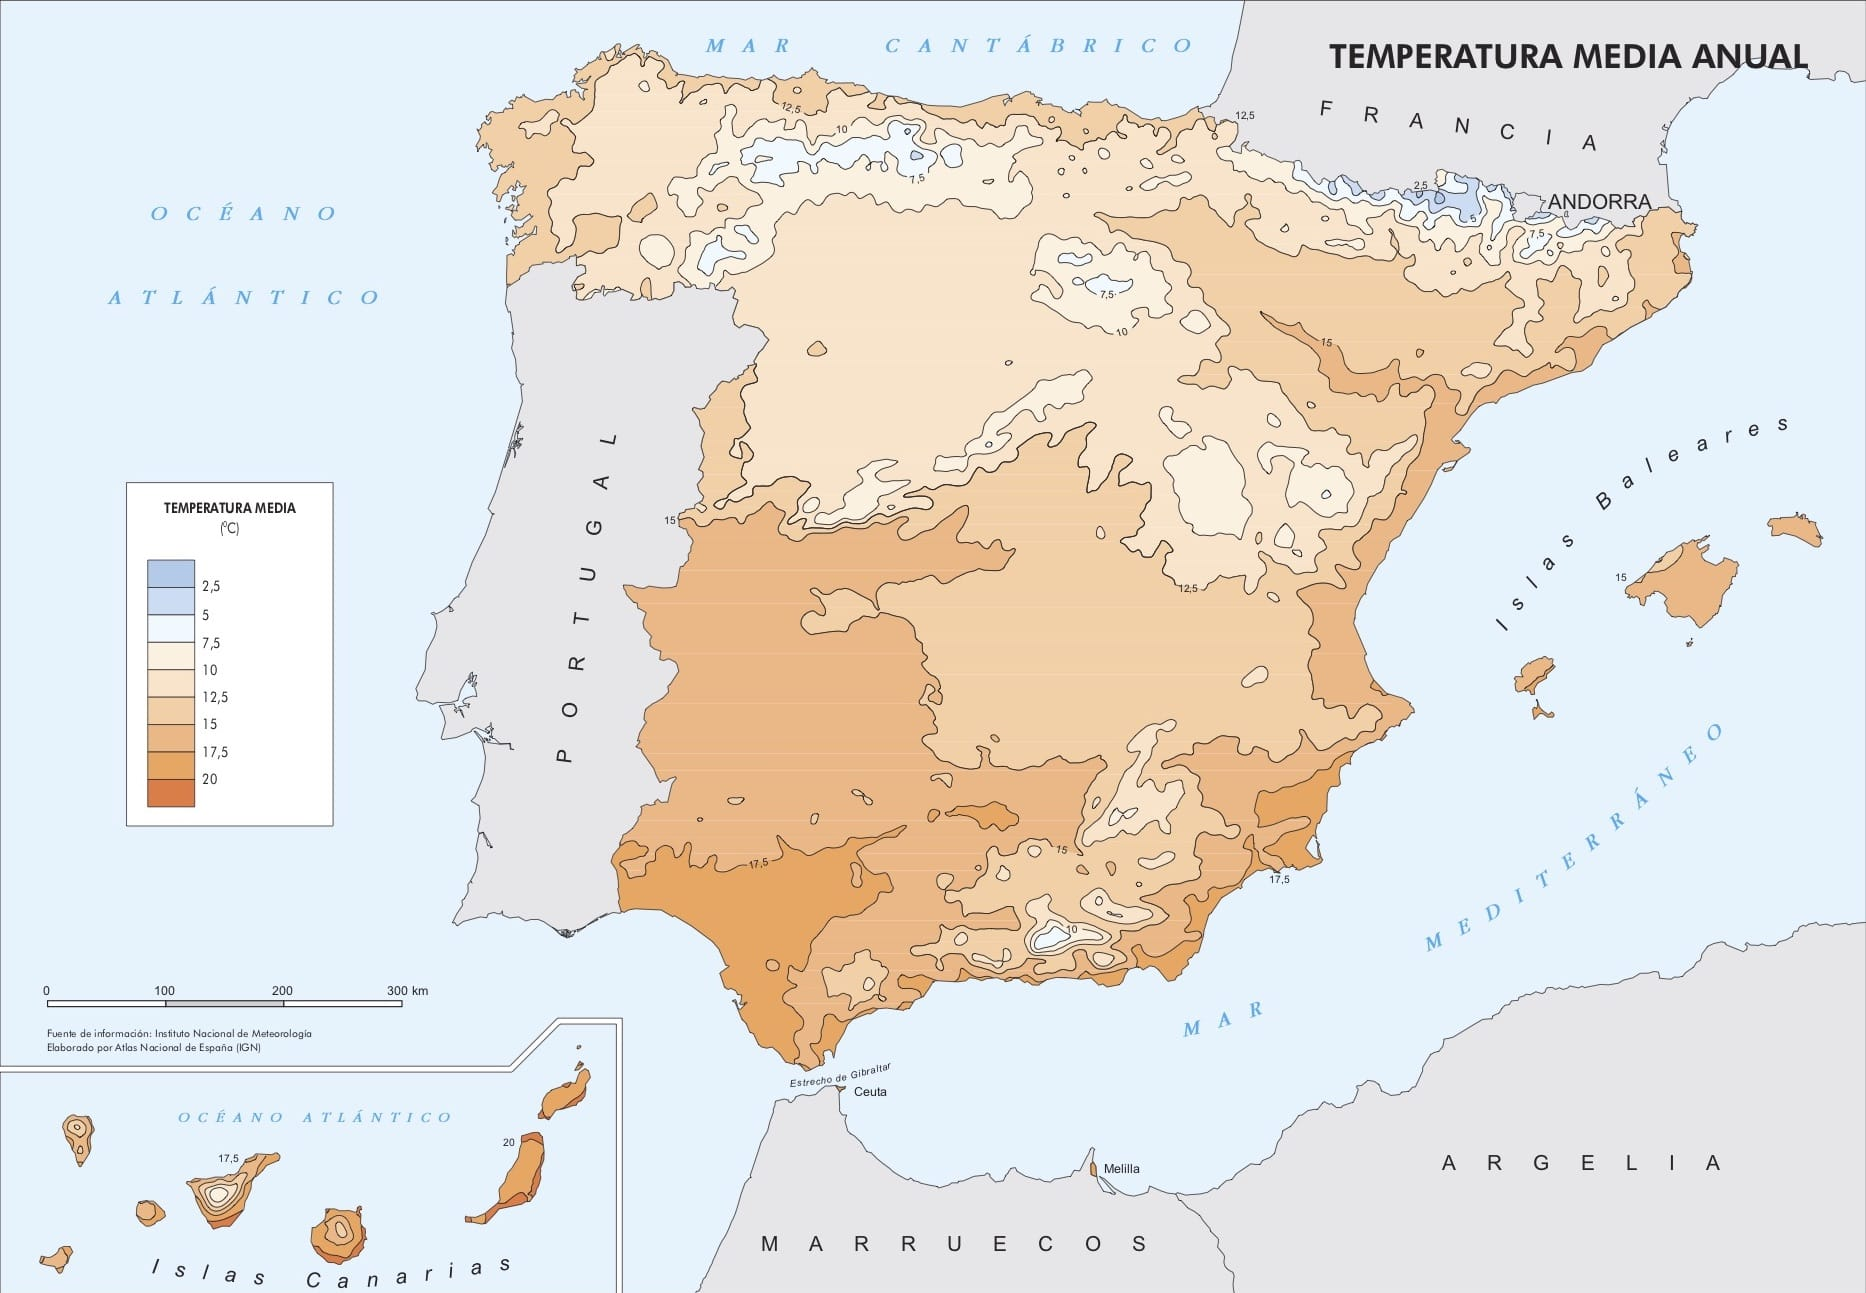 Mean temperature in Spain